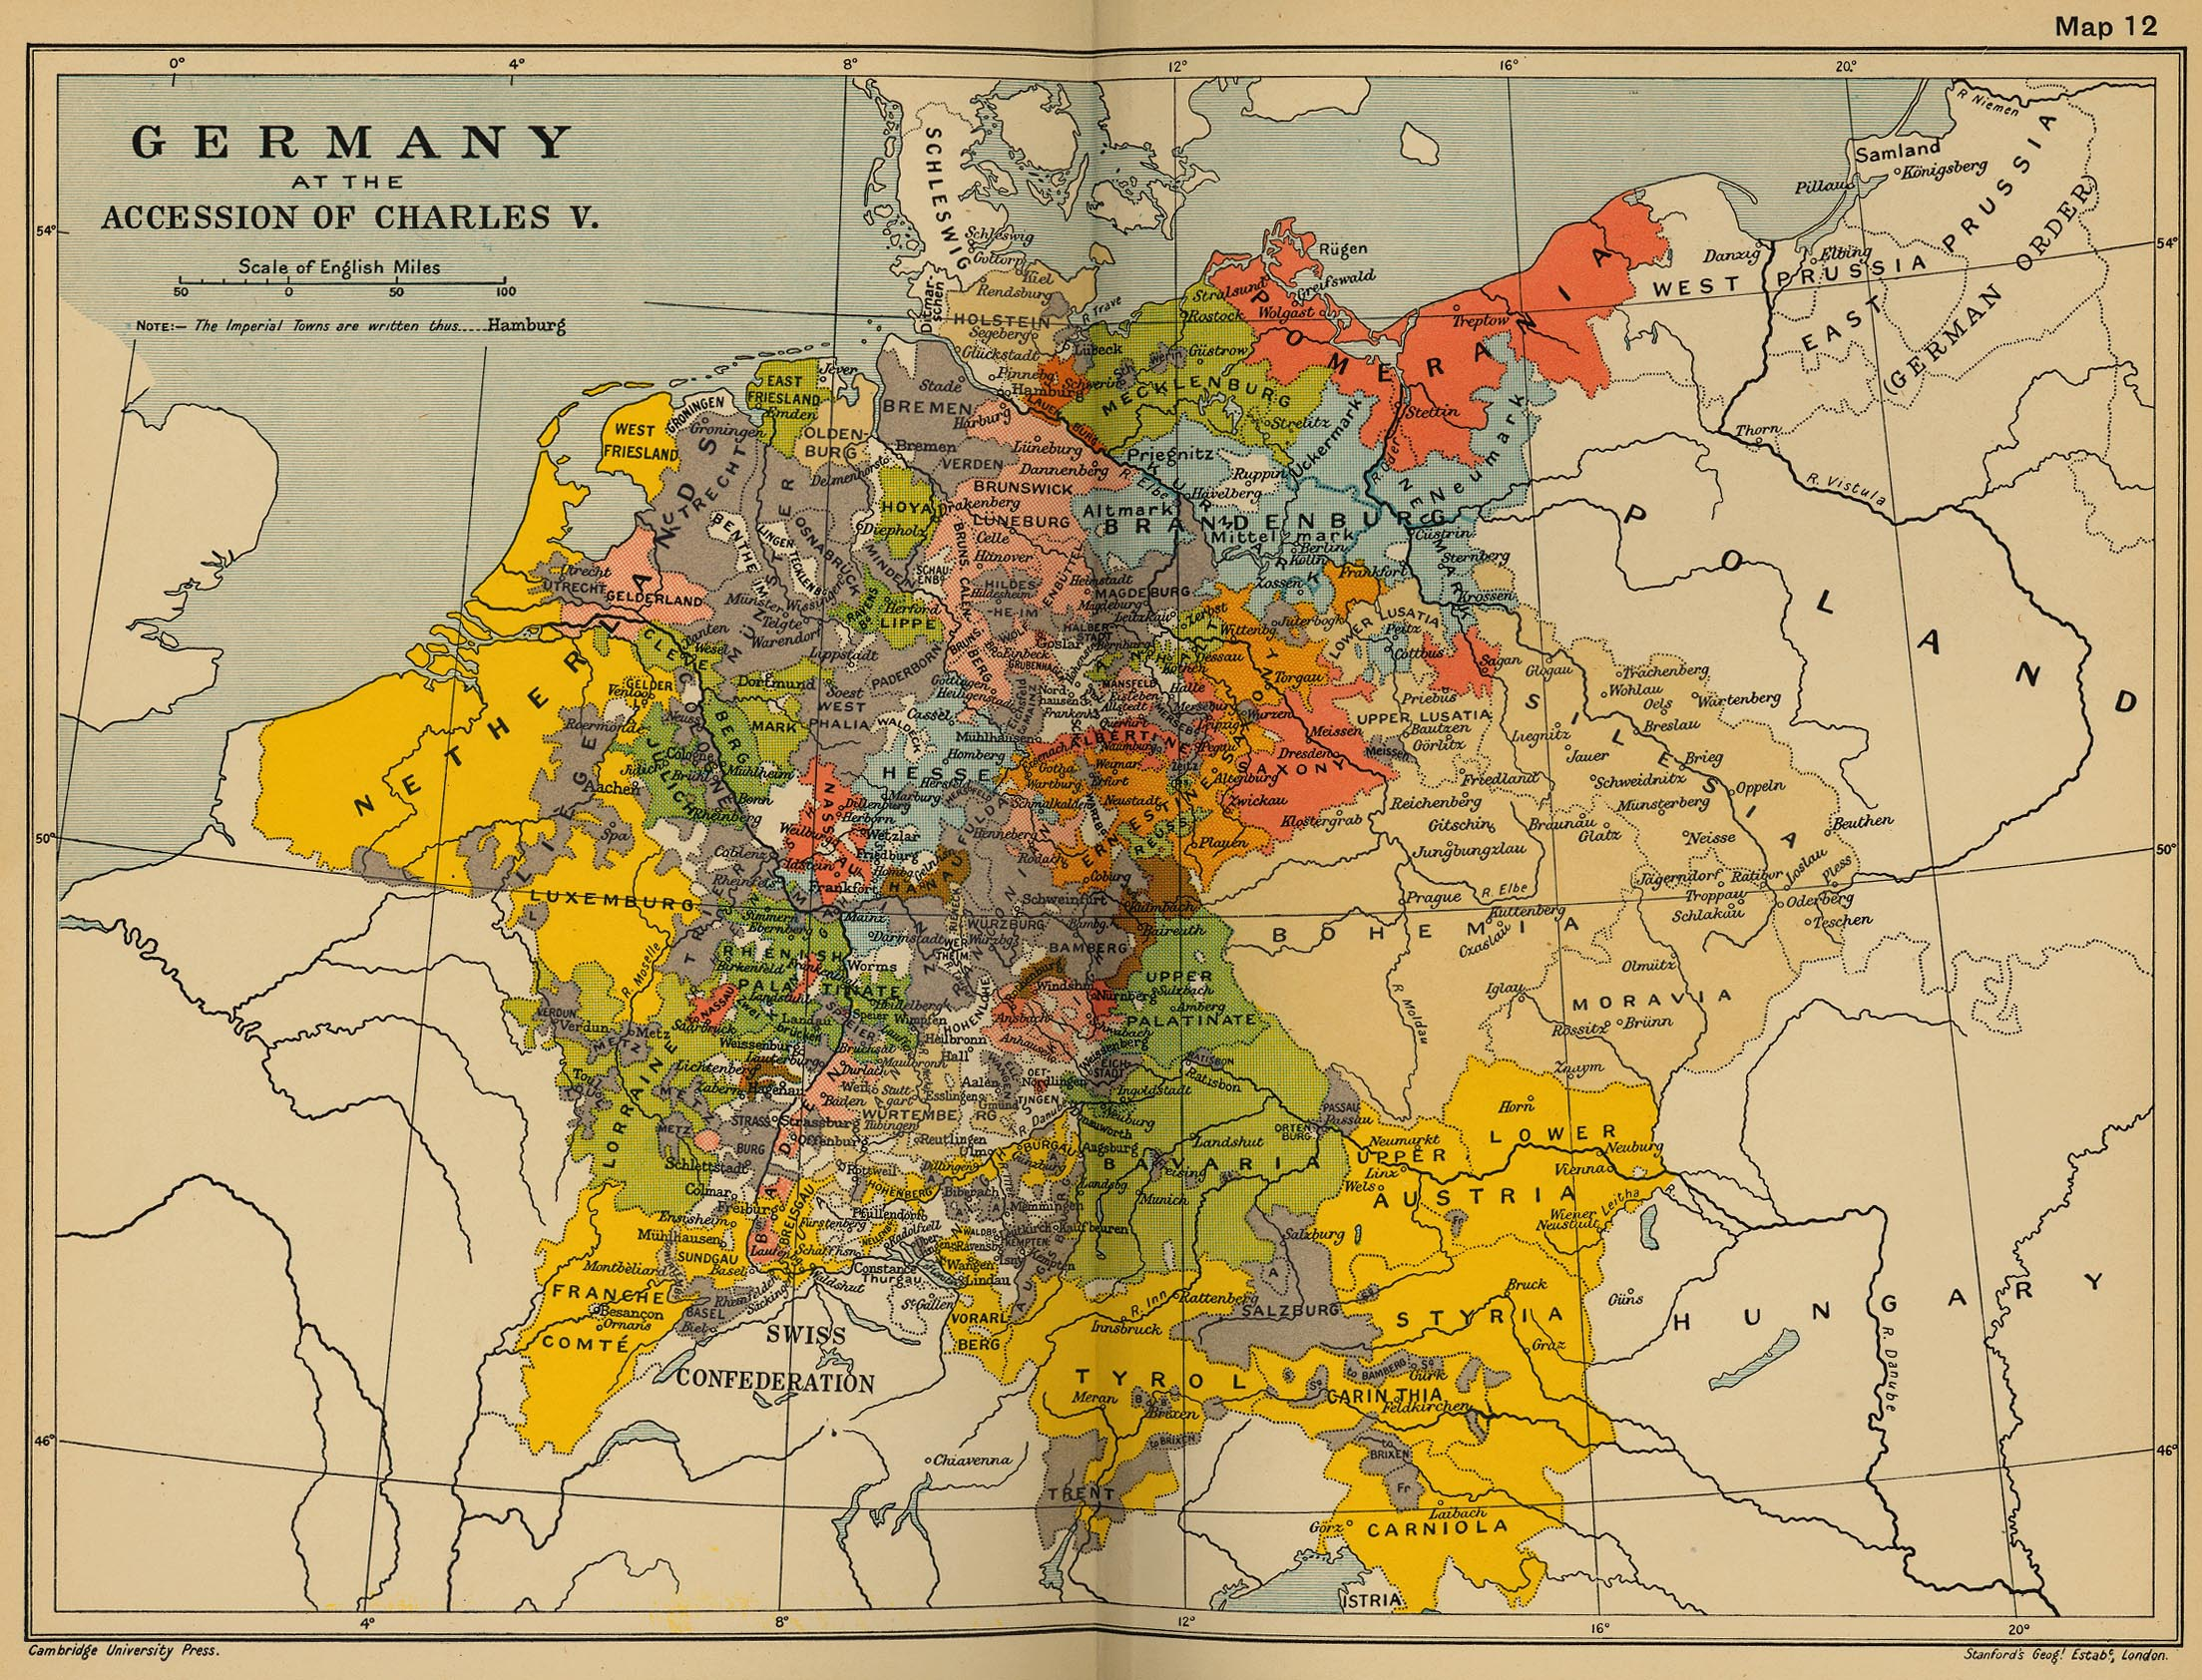 383k map 11 germany at the accession of charles v